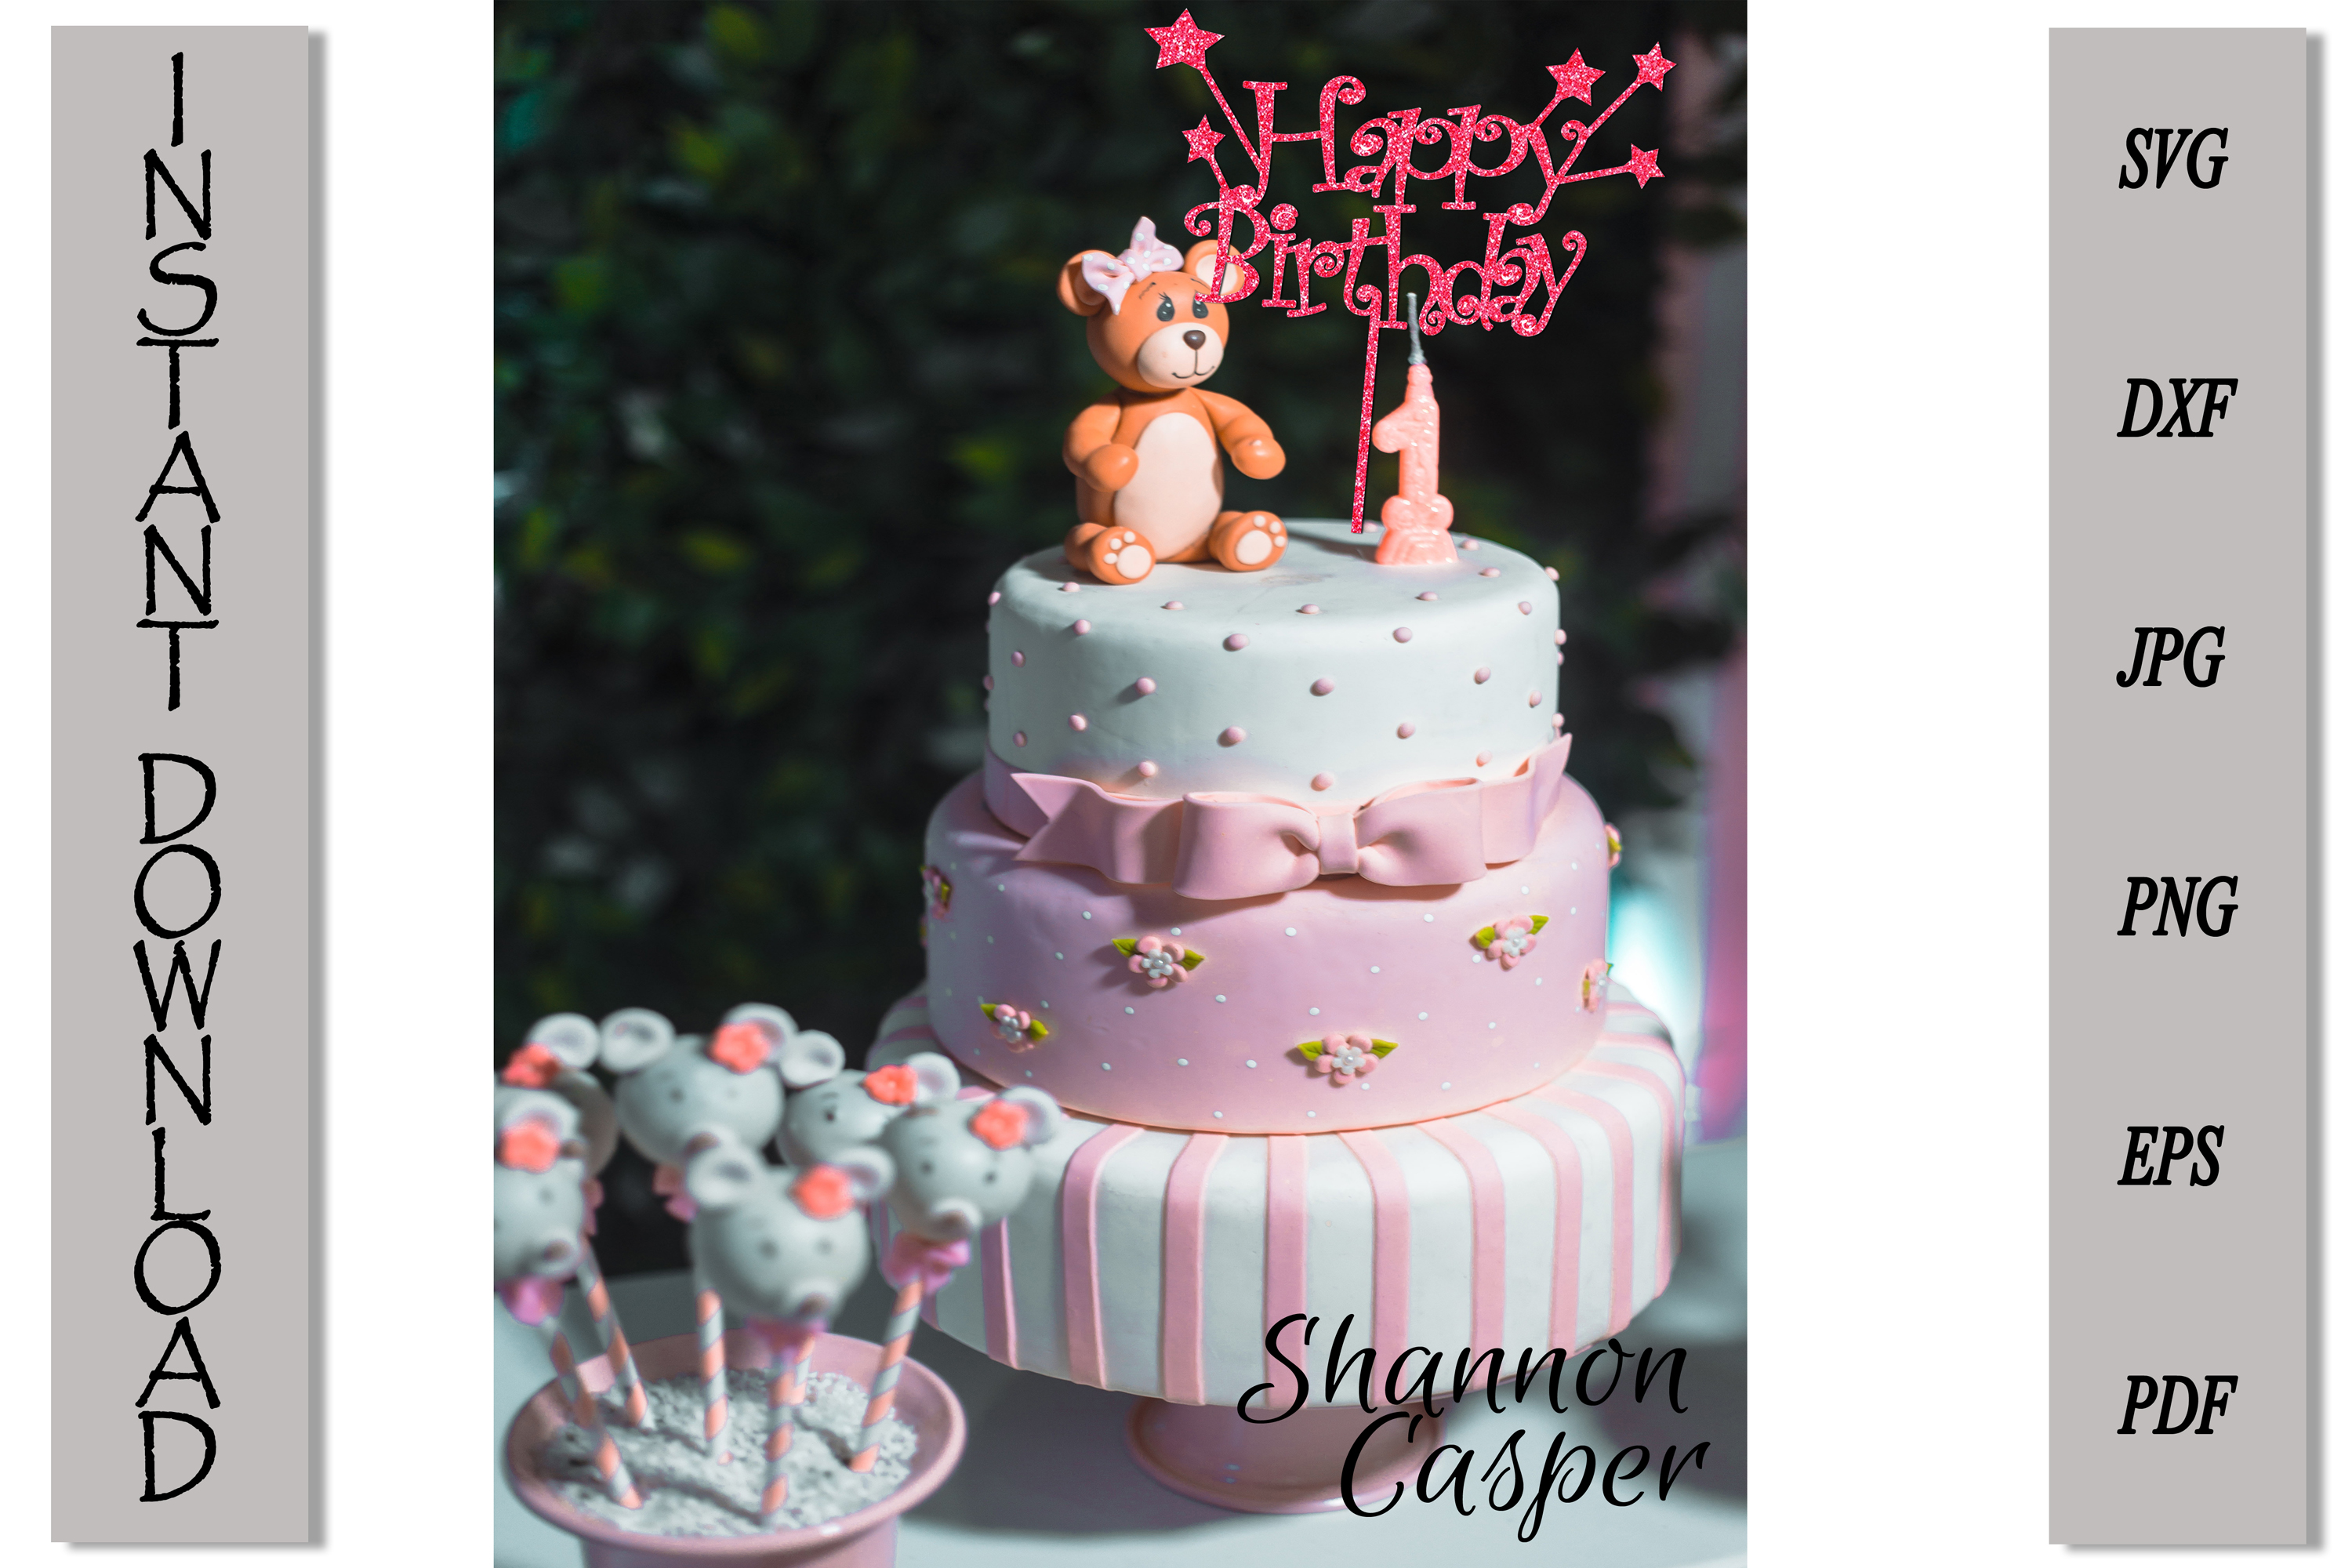 Happy Birthday Cake Topper with Stars example image 5